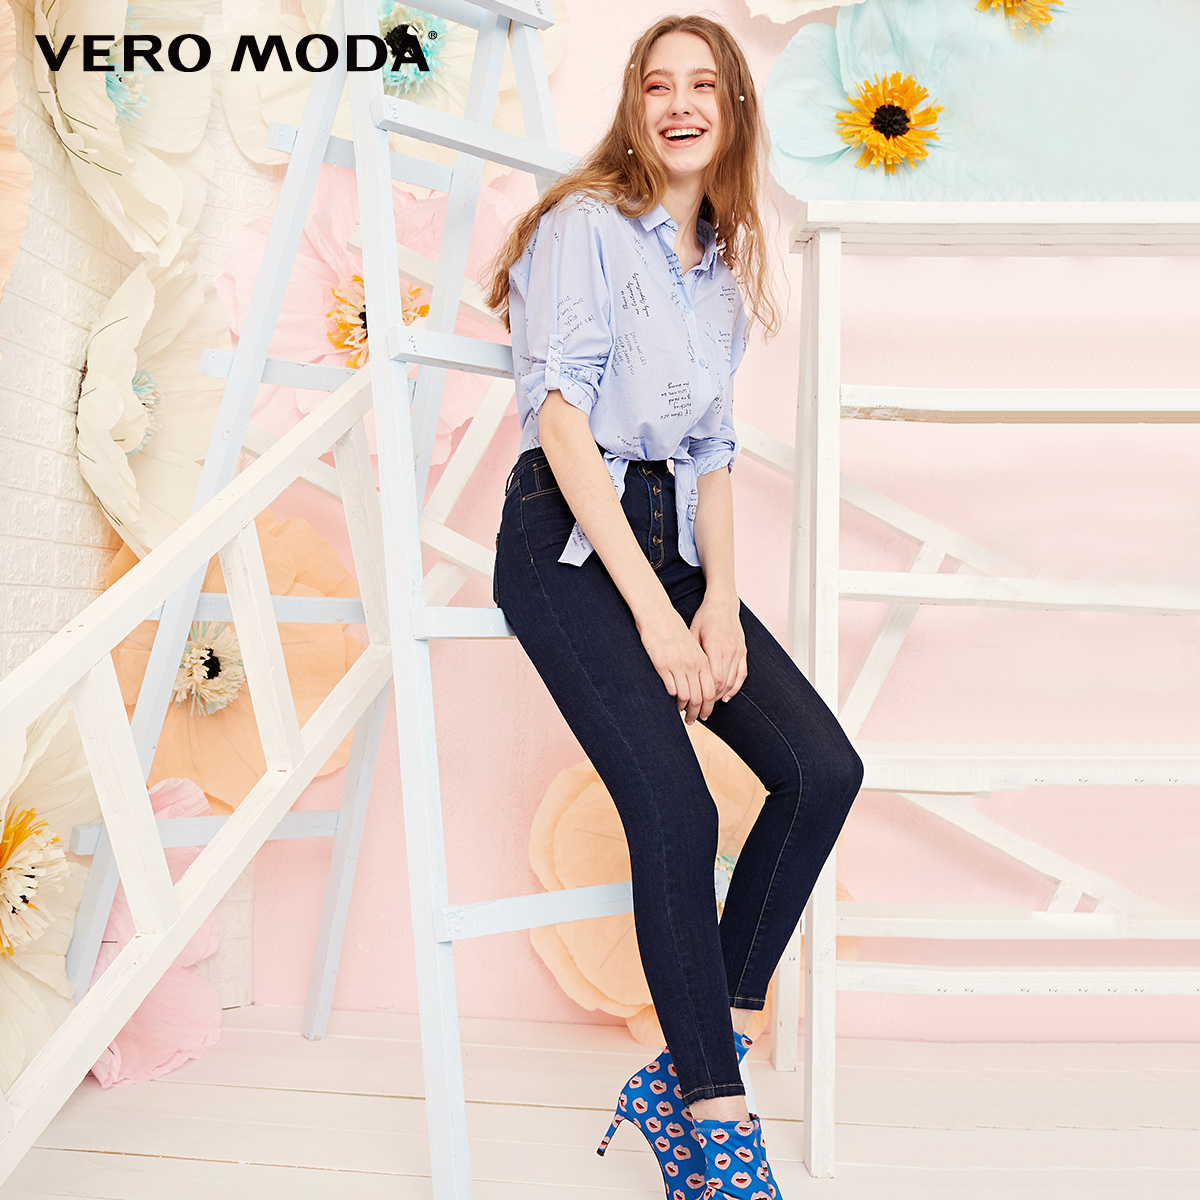 Vero Moda Women's Slim Fit Stretch Decorative Buttons High-rise Jeans | 319149551